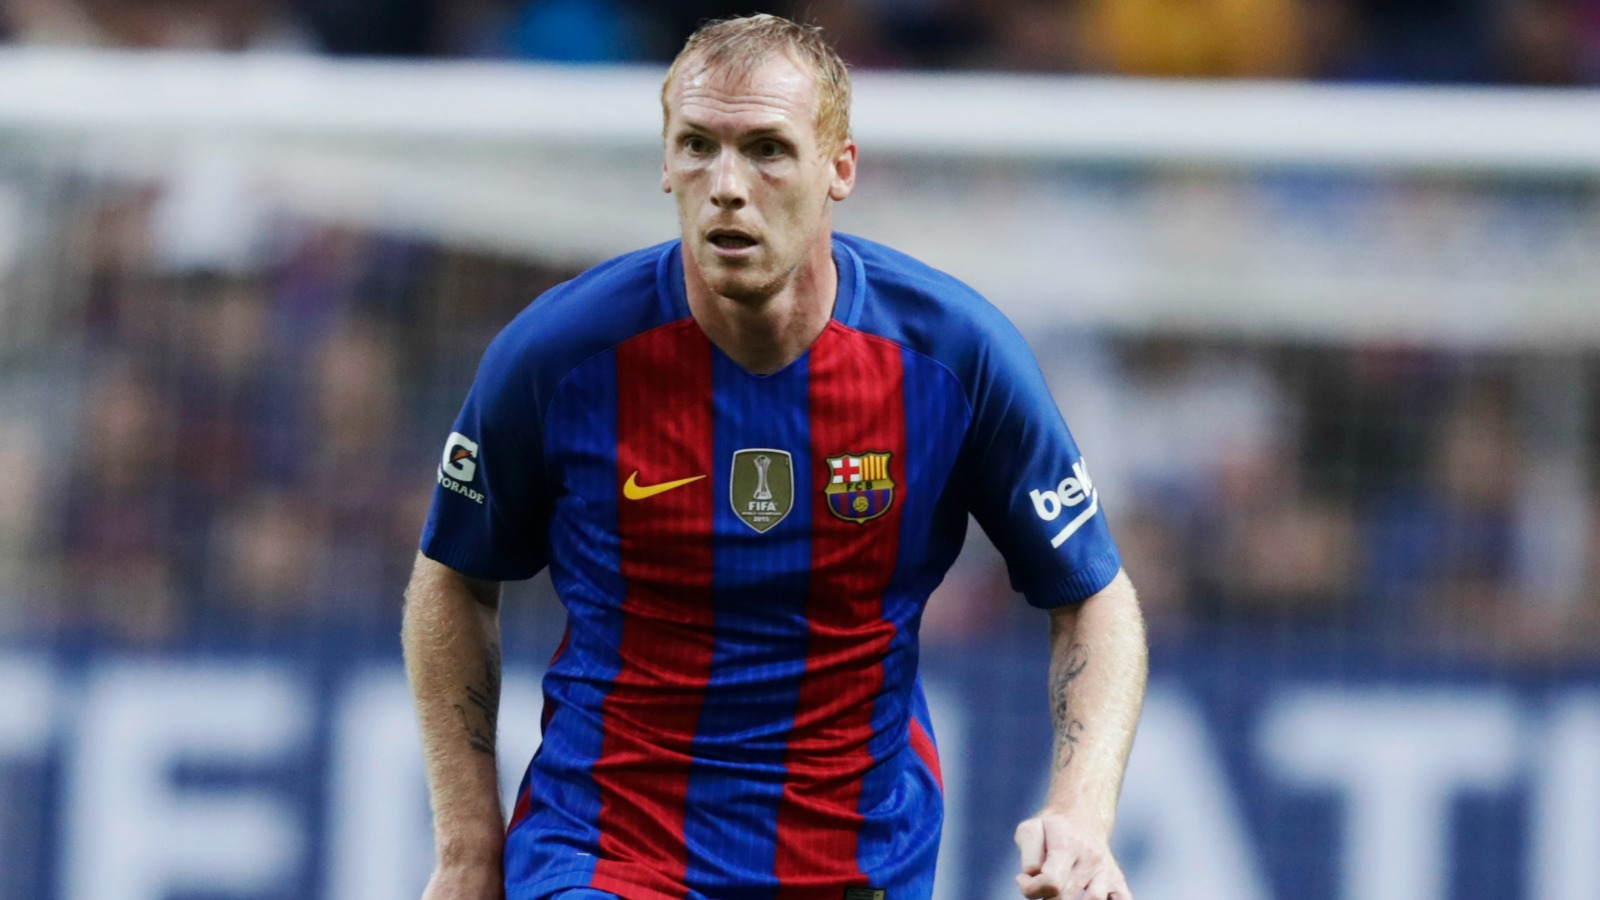 Jeremy Mathieu called to France national team, promptly retires from international duty